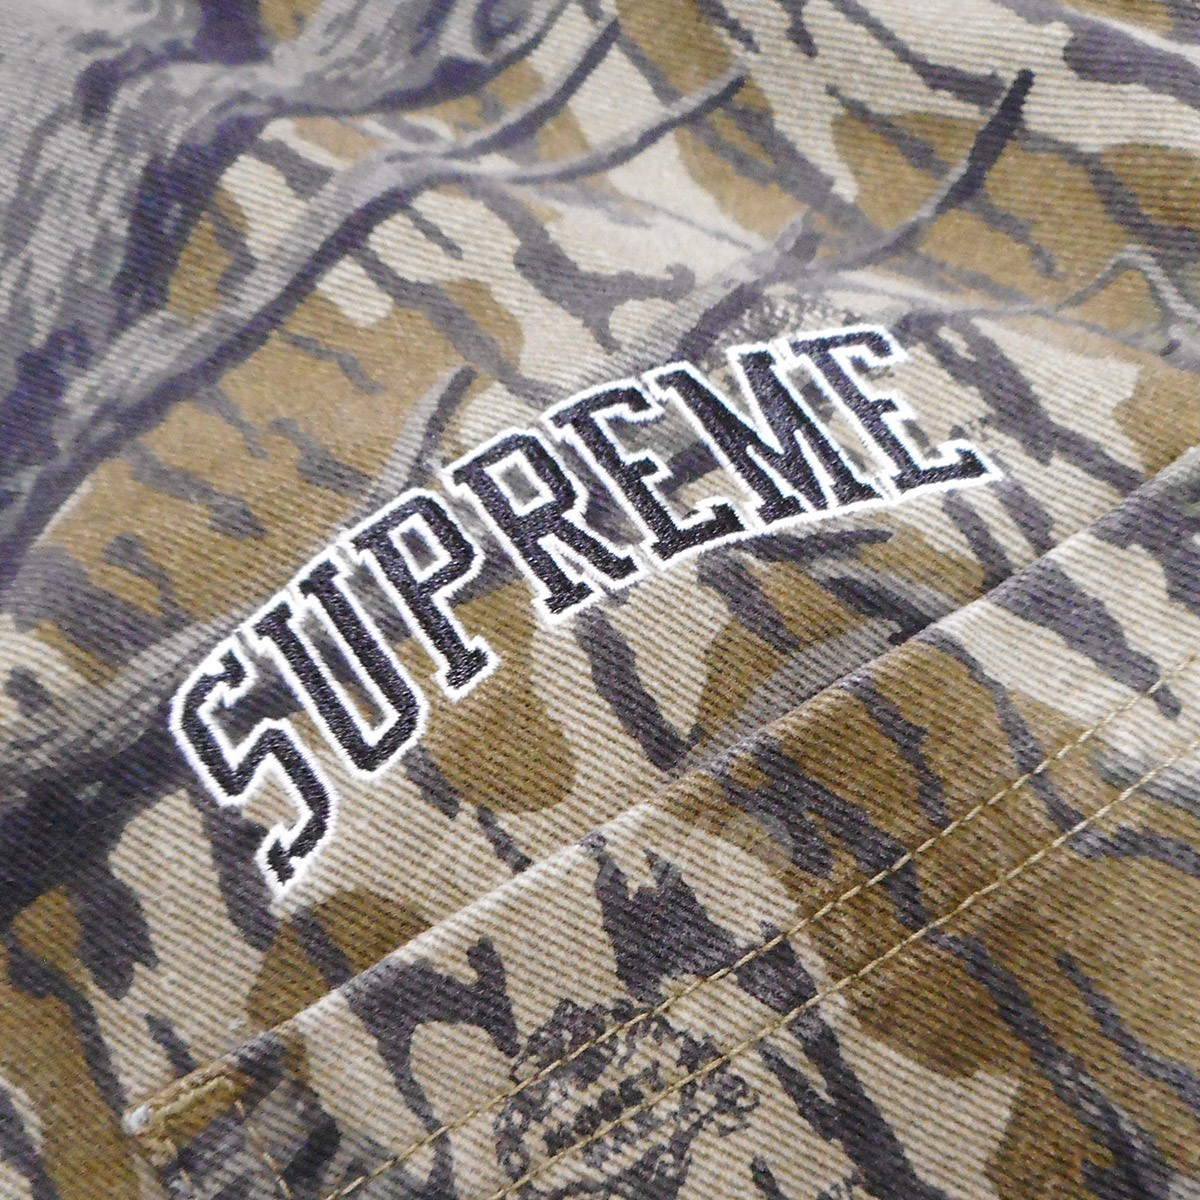 841ecac659d7 SUPREME 18AW Coveralls Mossy Oak Camo camouflage pattern filler  オールインワンモッシーオークカモ (olive) size  M (シュプリーム)